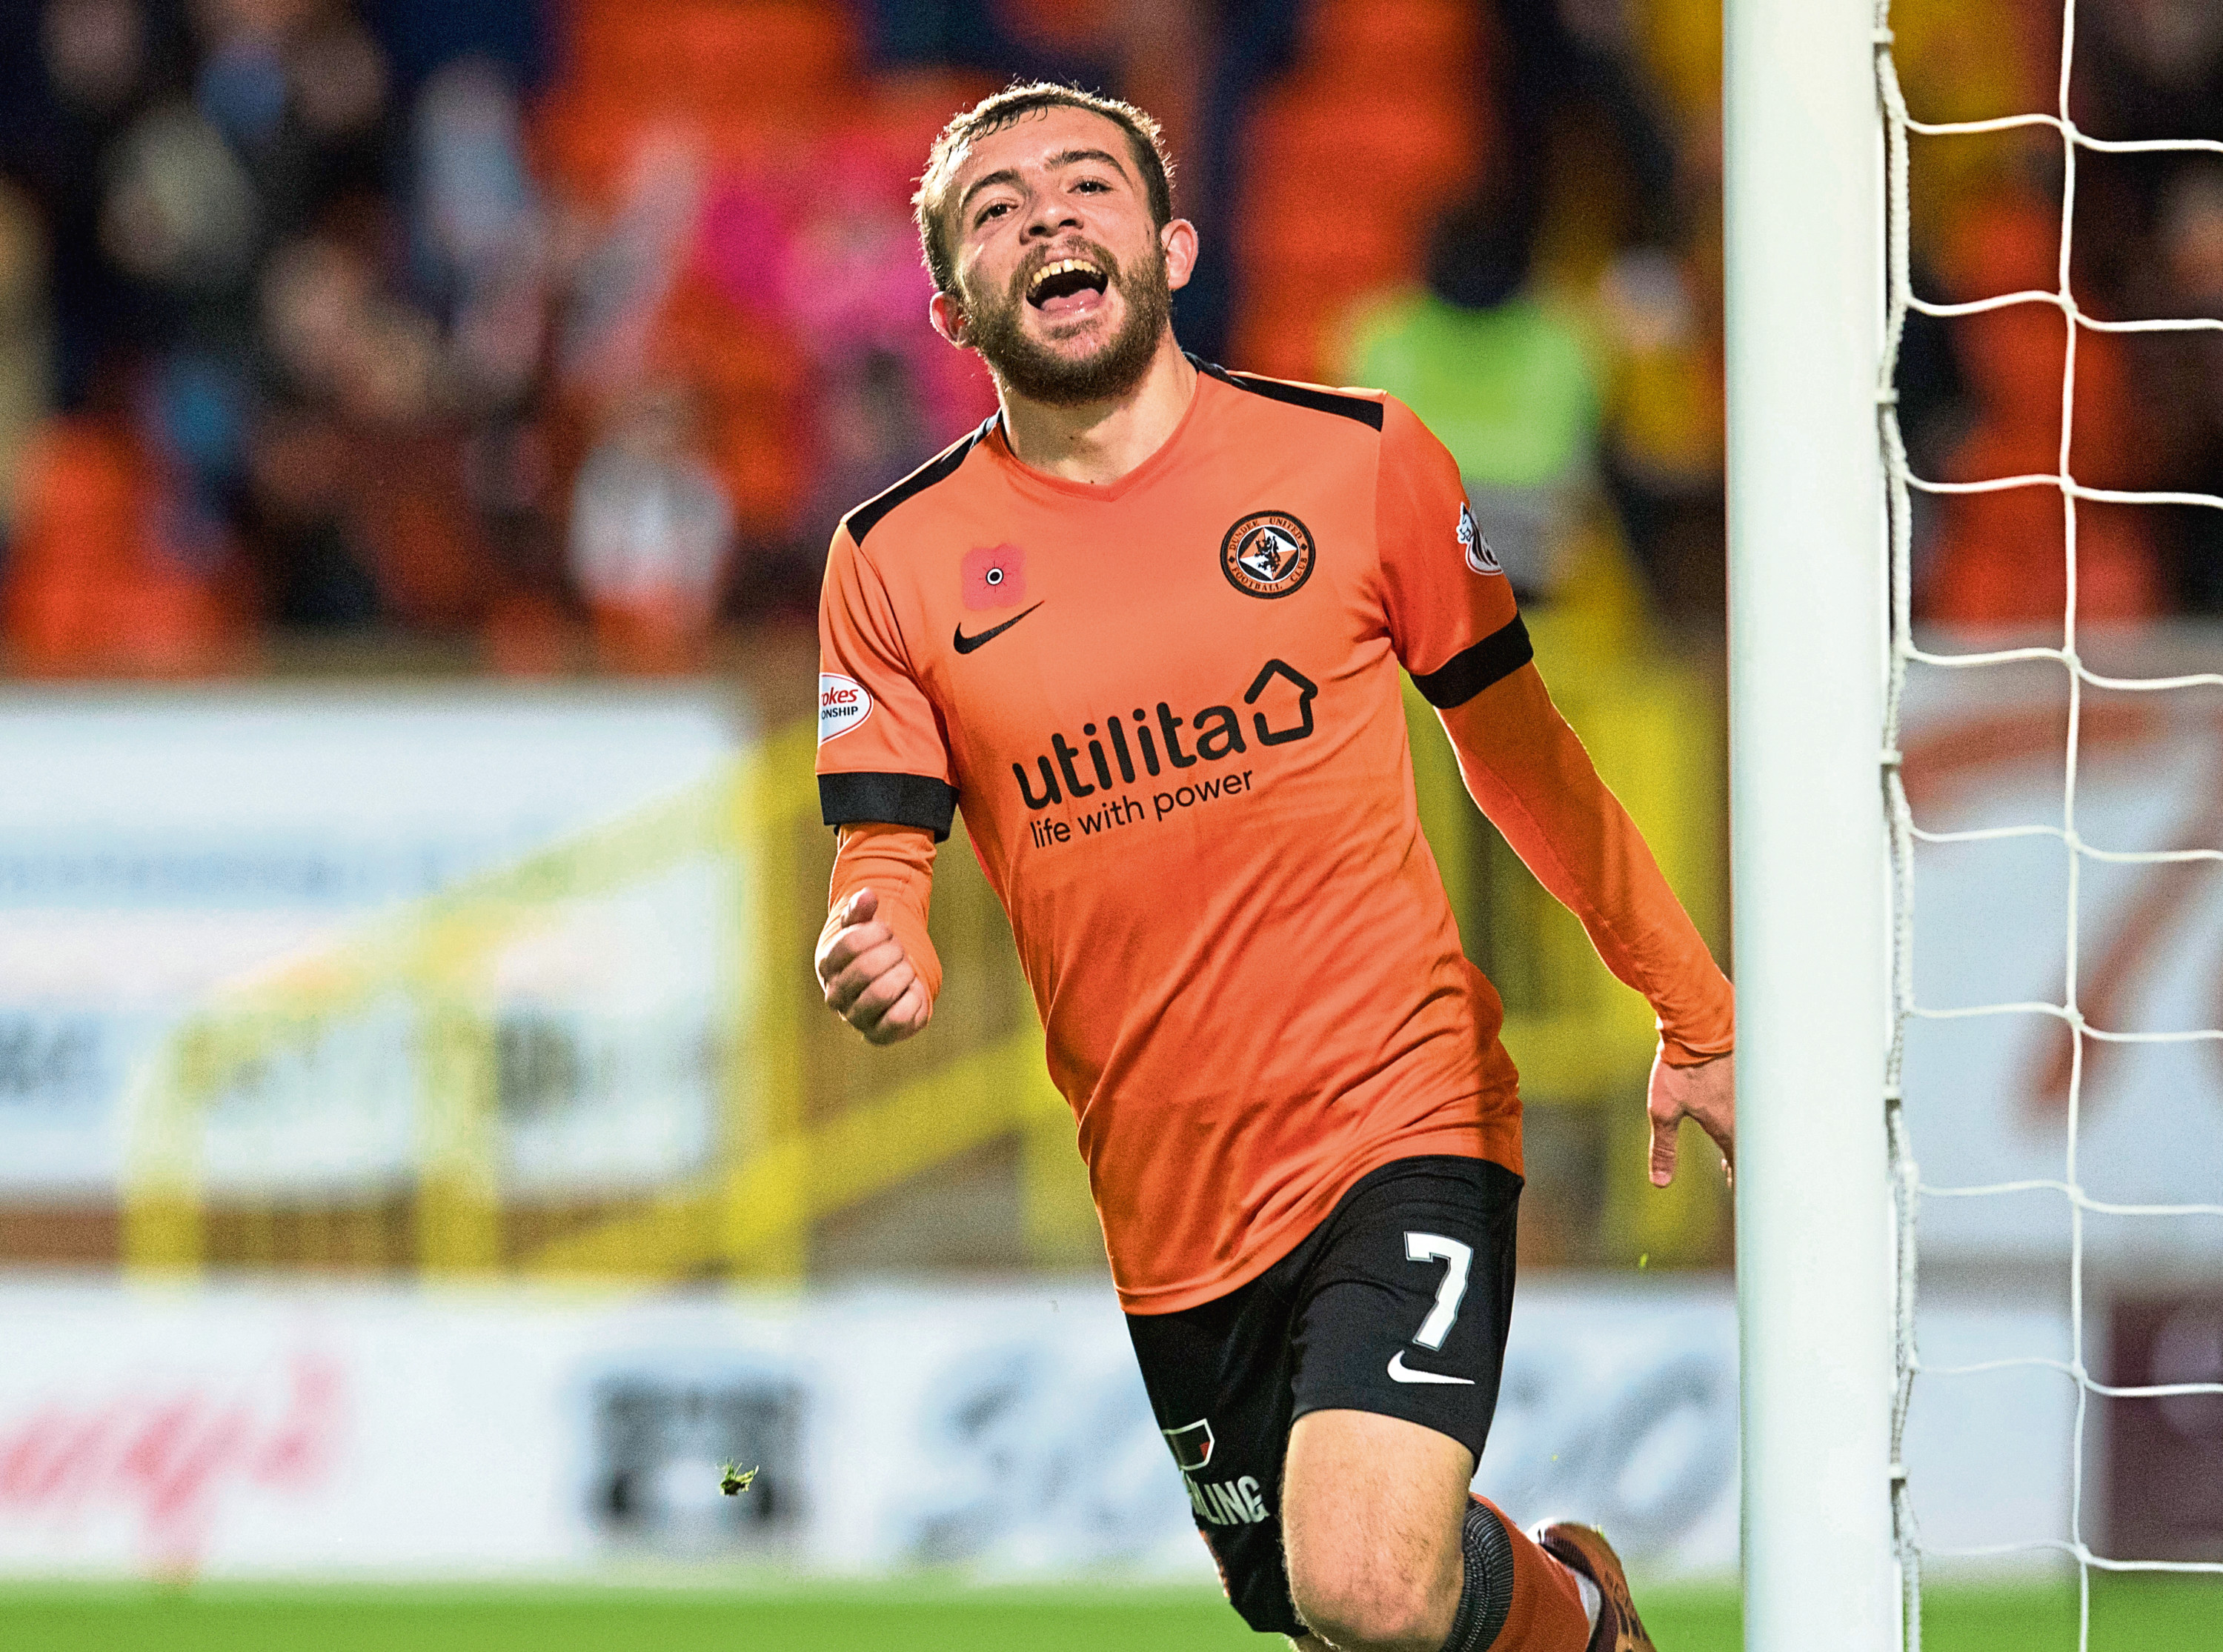 Dundee United attacker Paul McMullan's form has been rejuvenated since Robbie Neilson took over as manager in October.